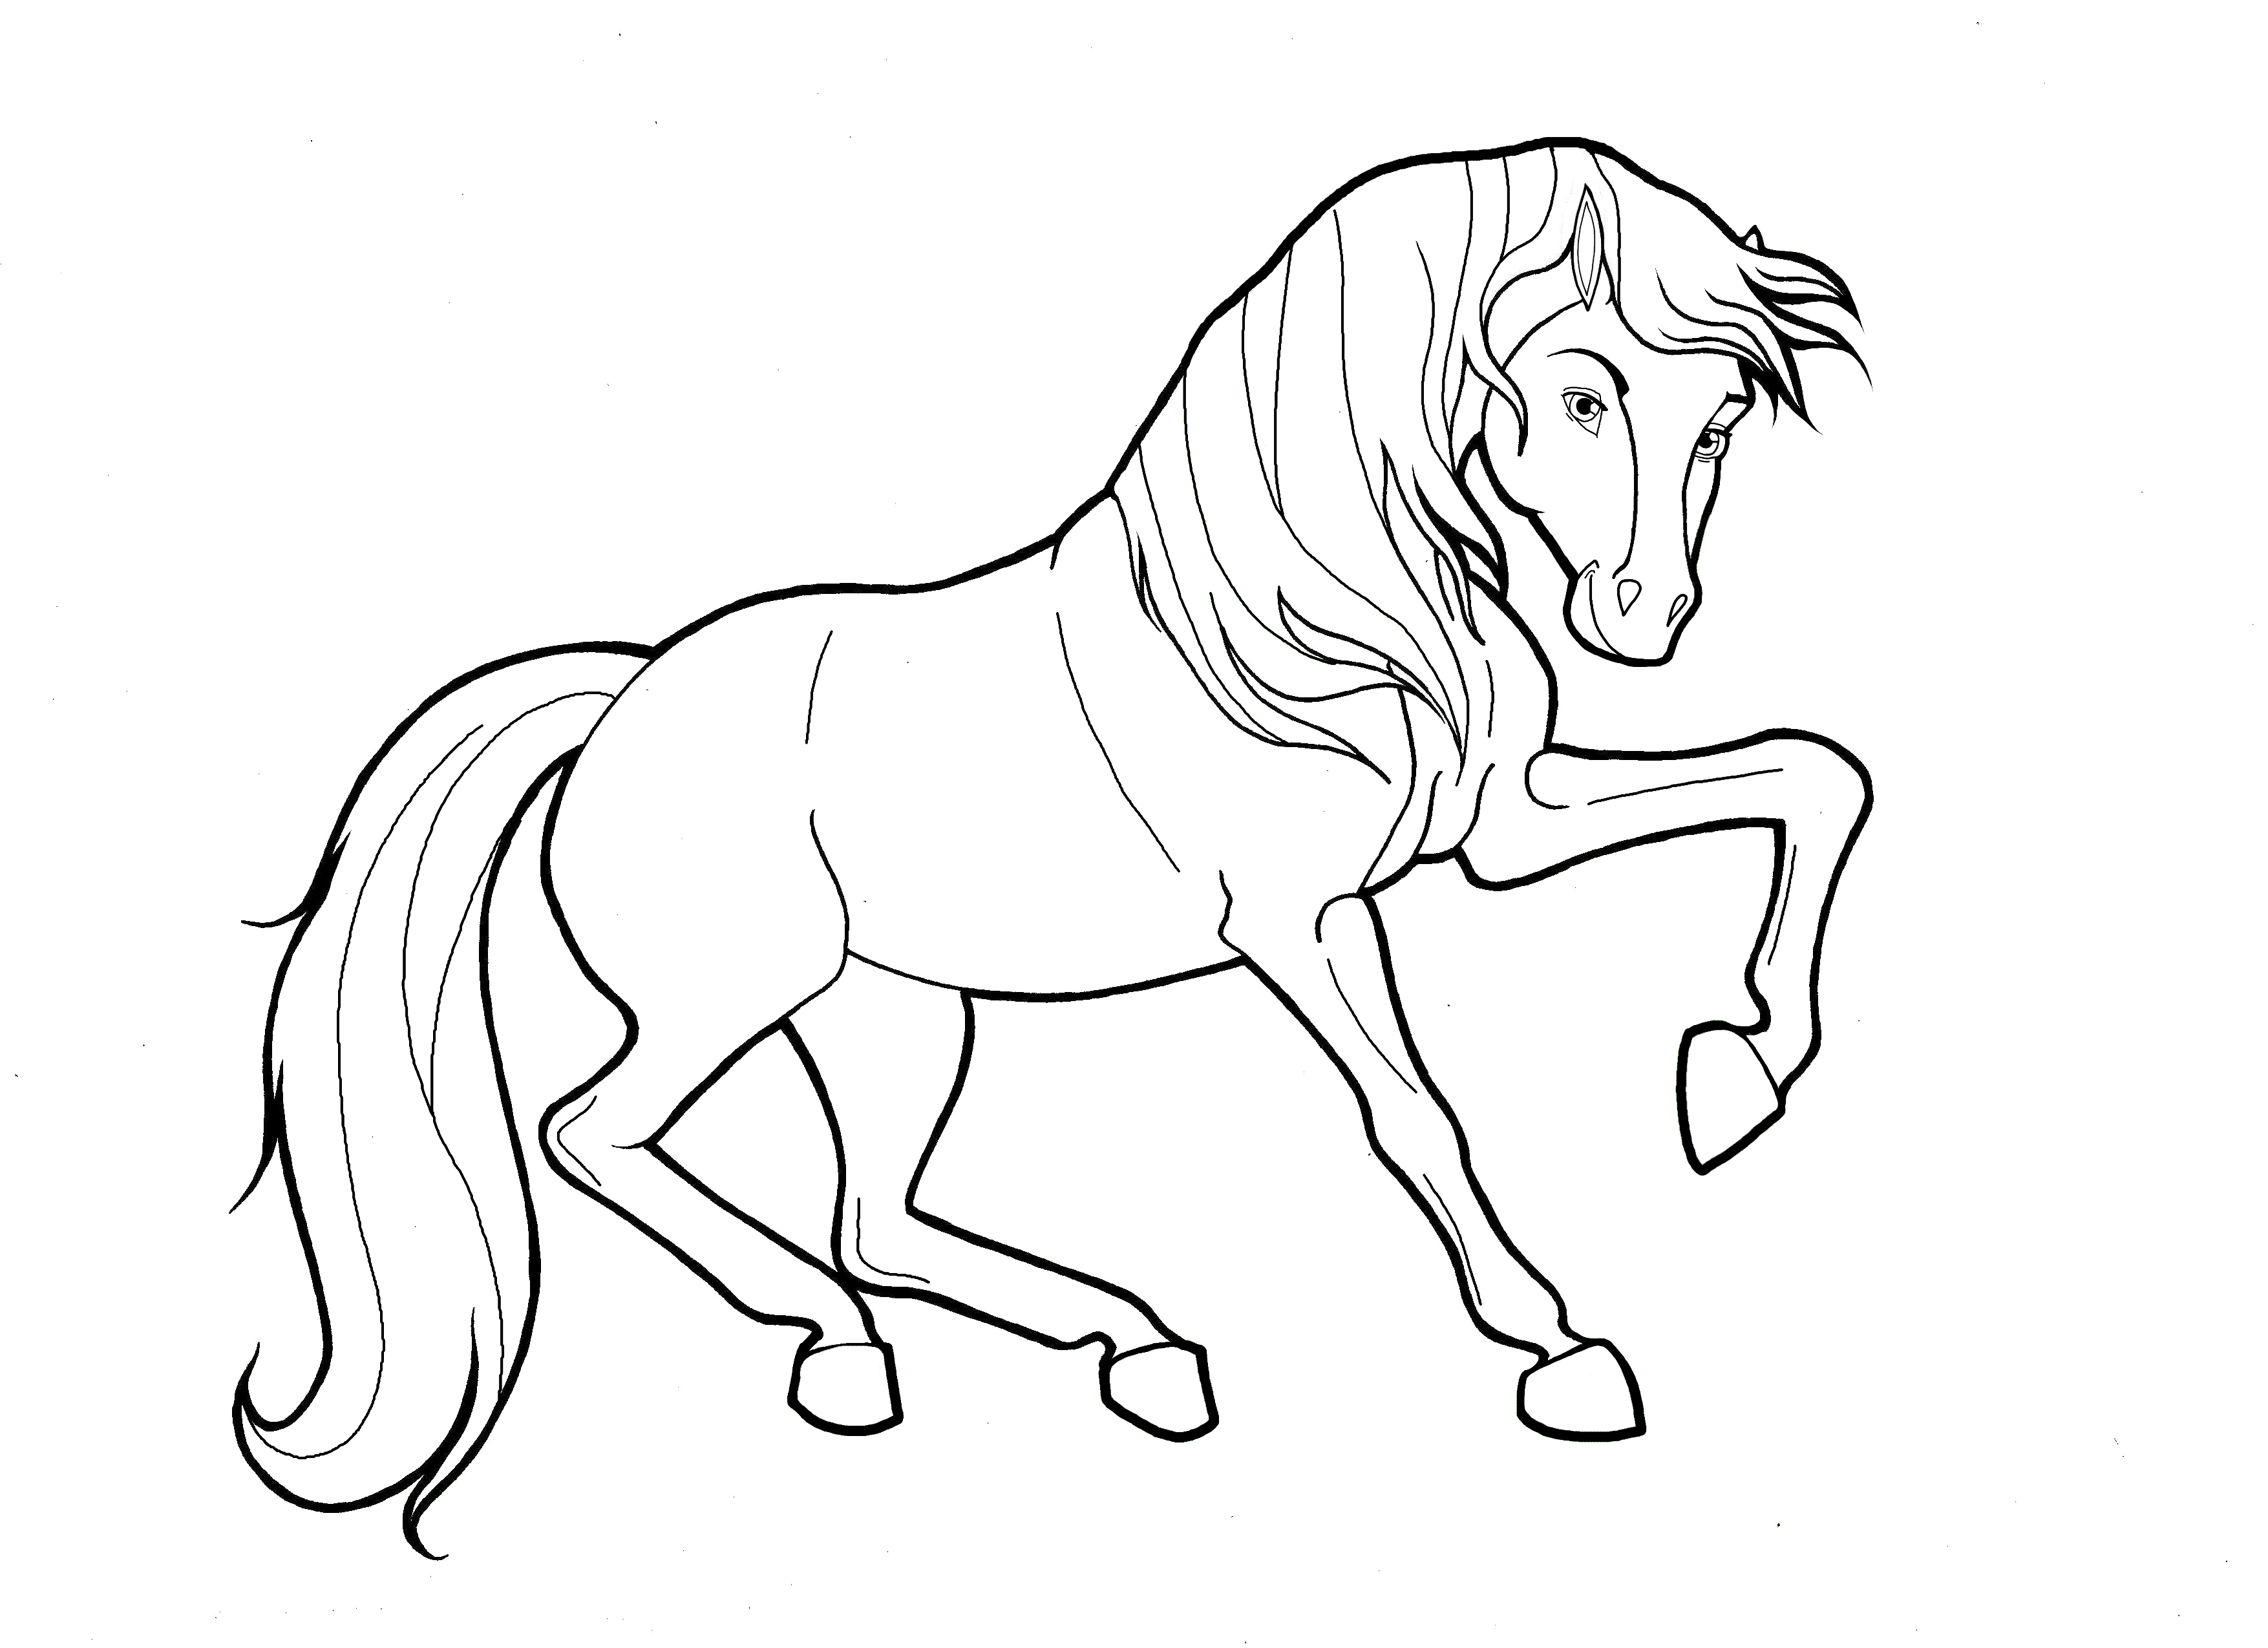 coloring page of horse coloring pages of horses printable free coloring sheets coloring page horse of